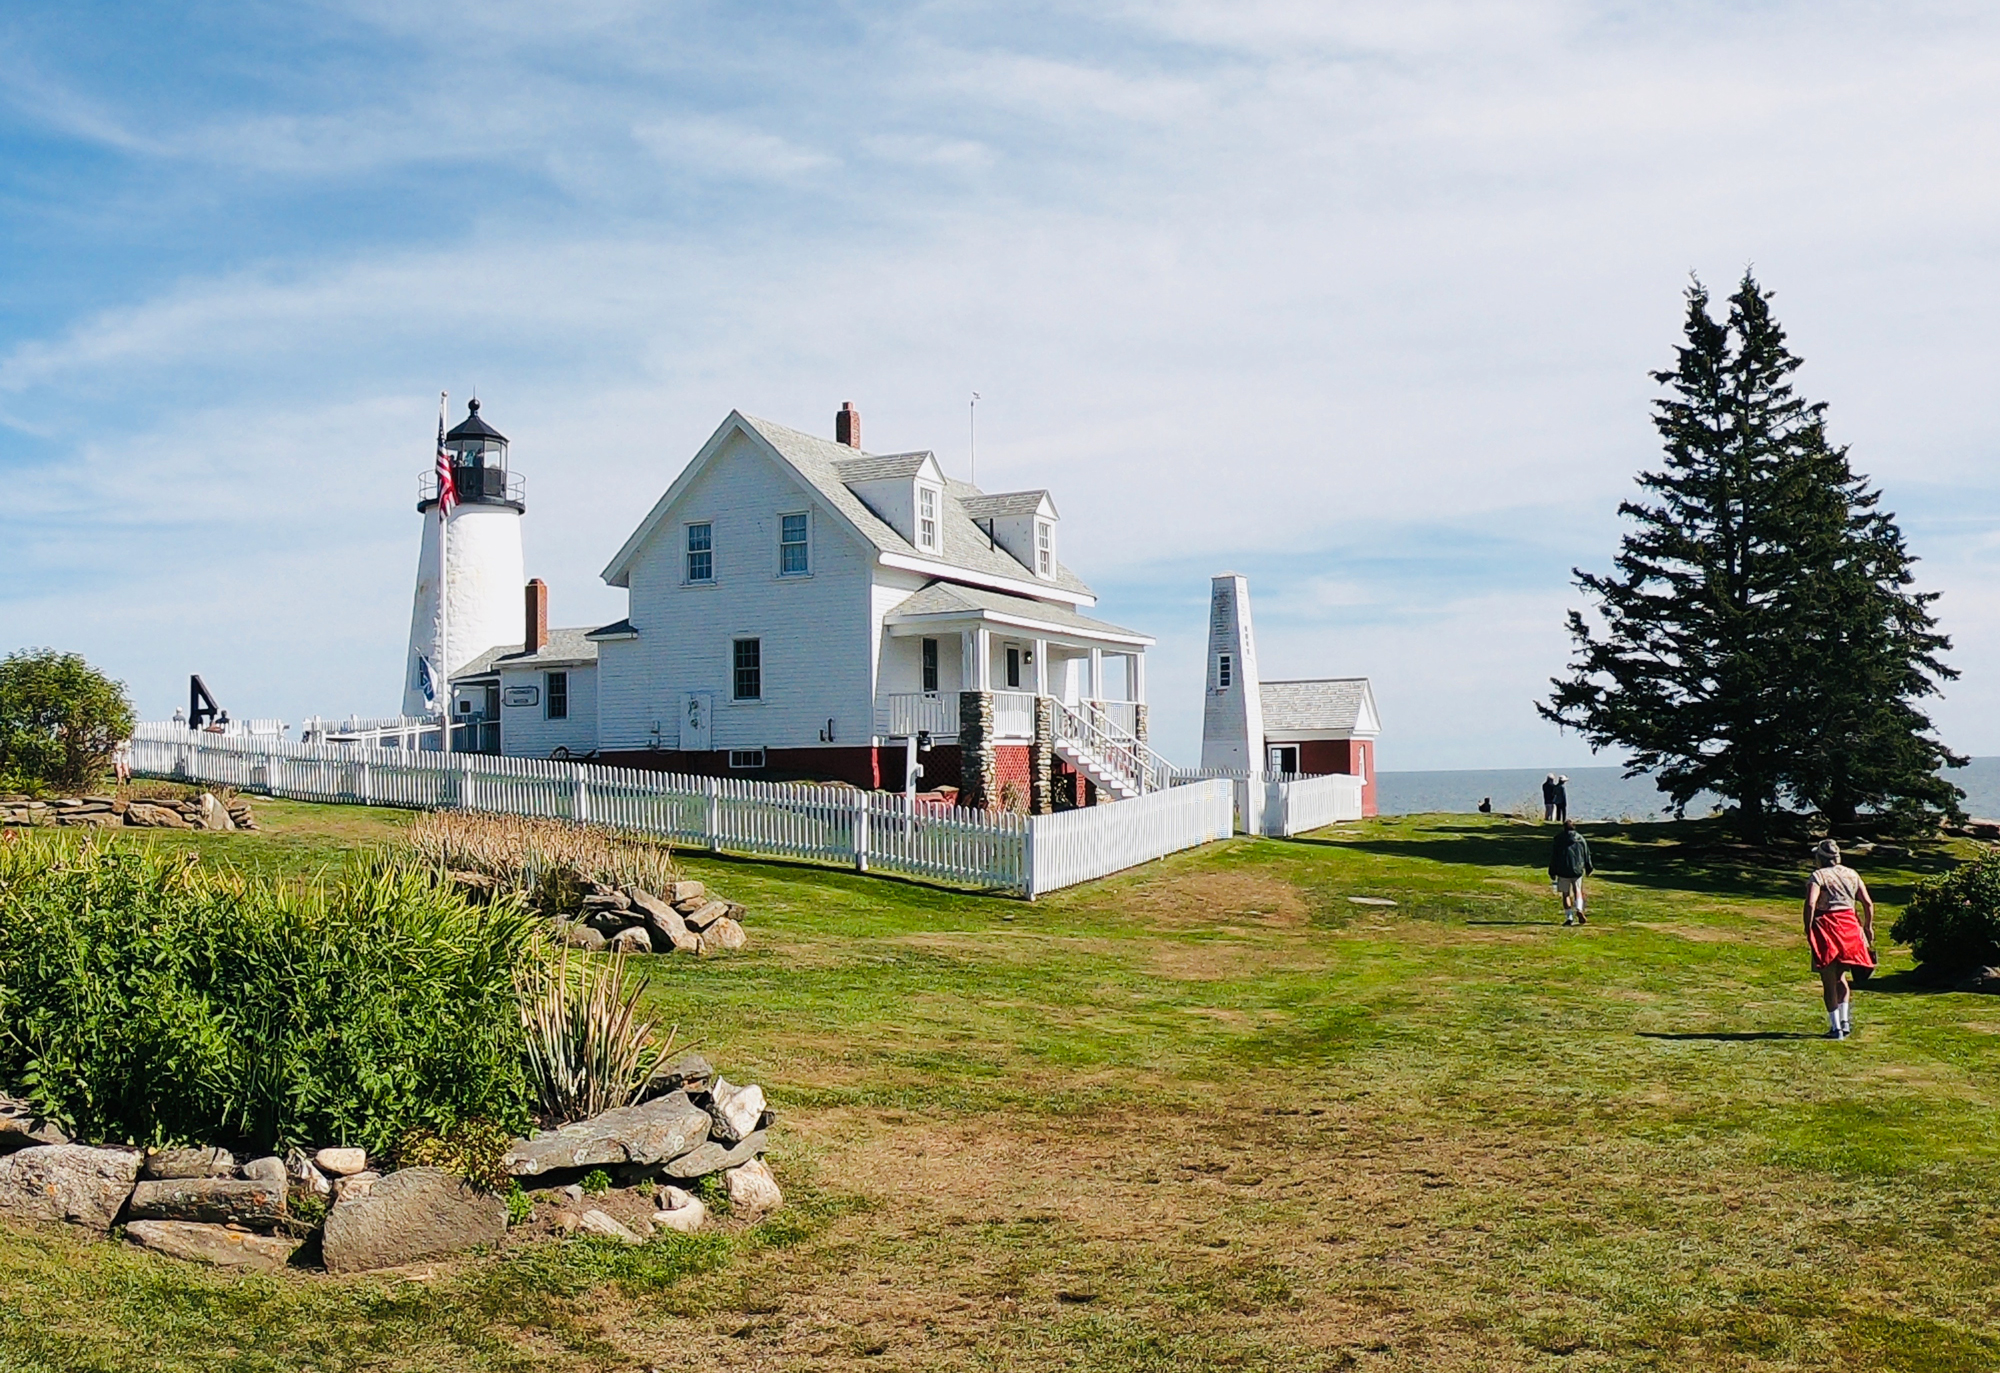 The Pemaquid lighthouse at Pemaquid Point Lighthouse Park in Bristol, Maine